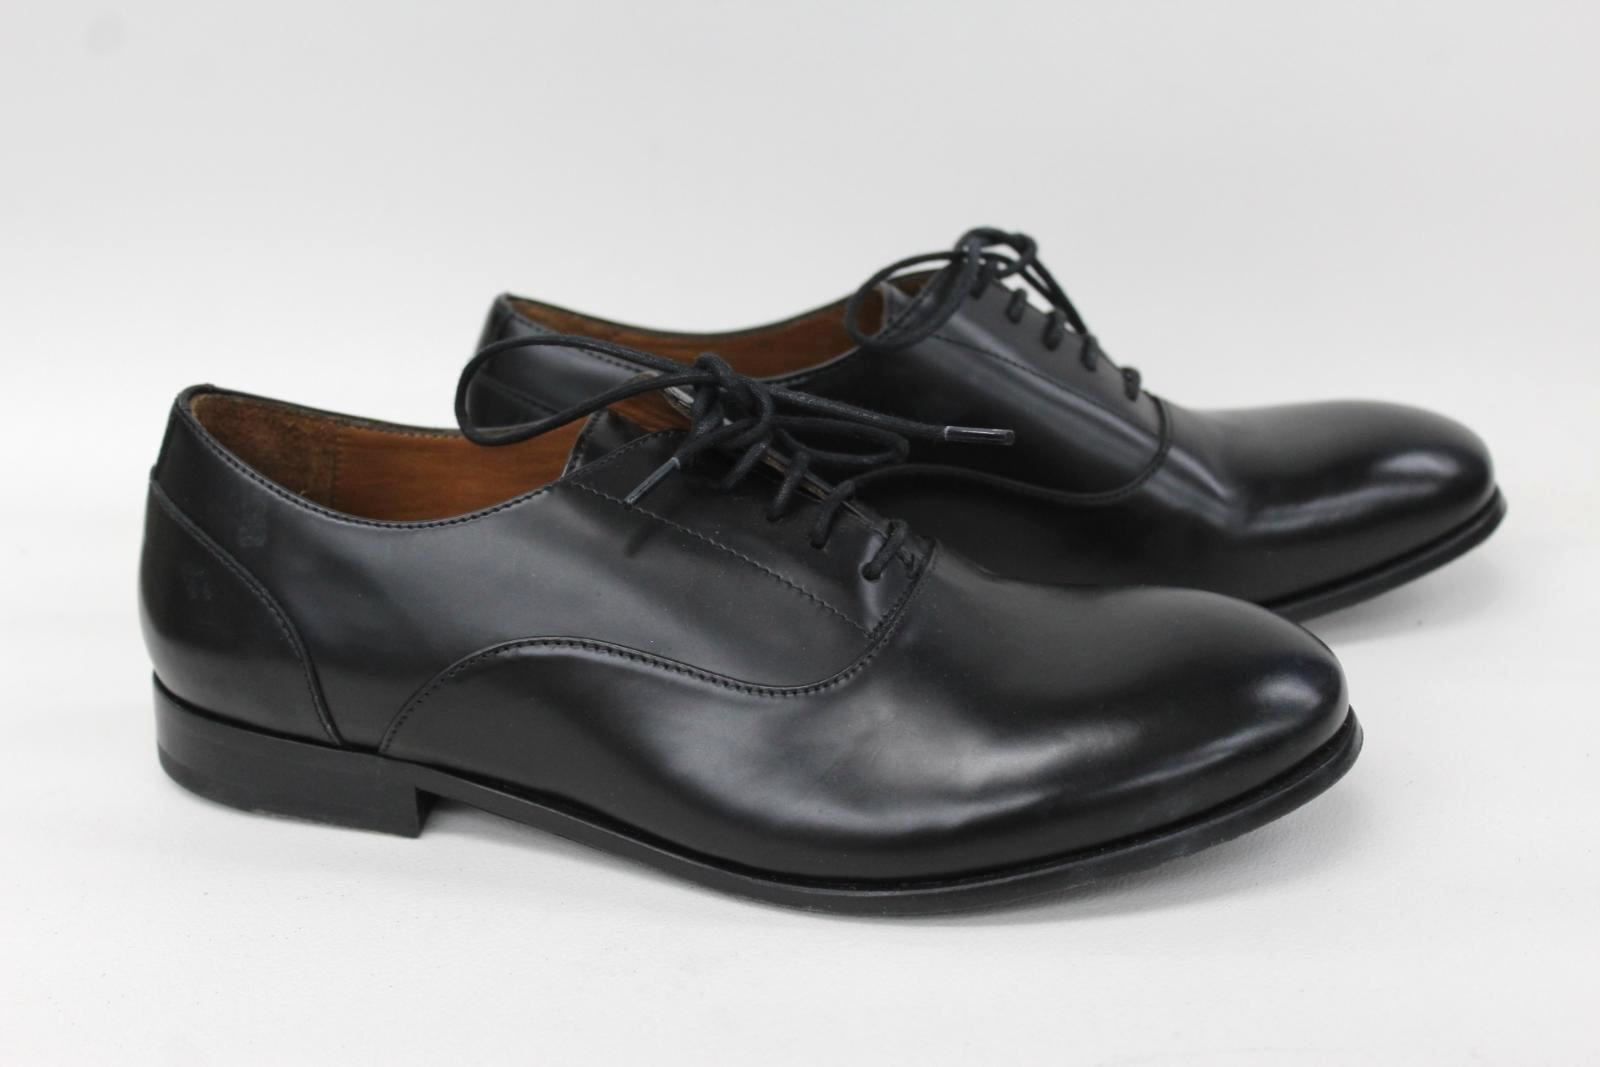 HOPE-Ladies-Black-Calf-Leather-Lace-Up-Round-Toe-Flat-Derby-Shoes-UK4-EU37